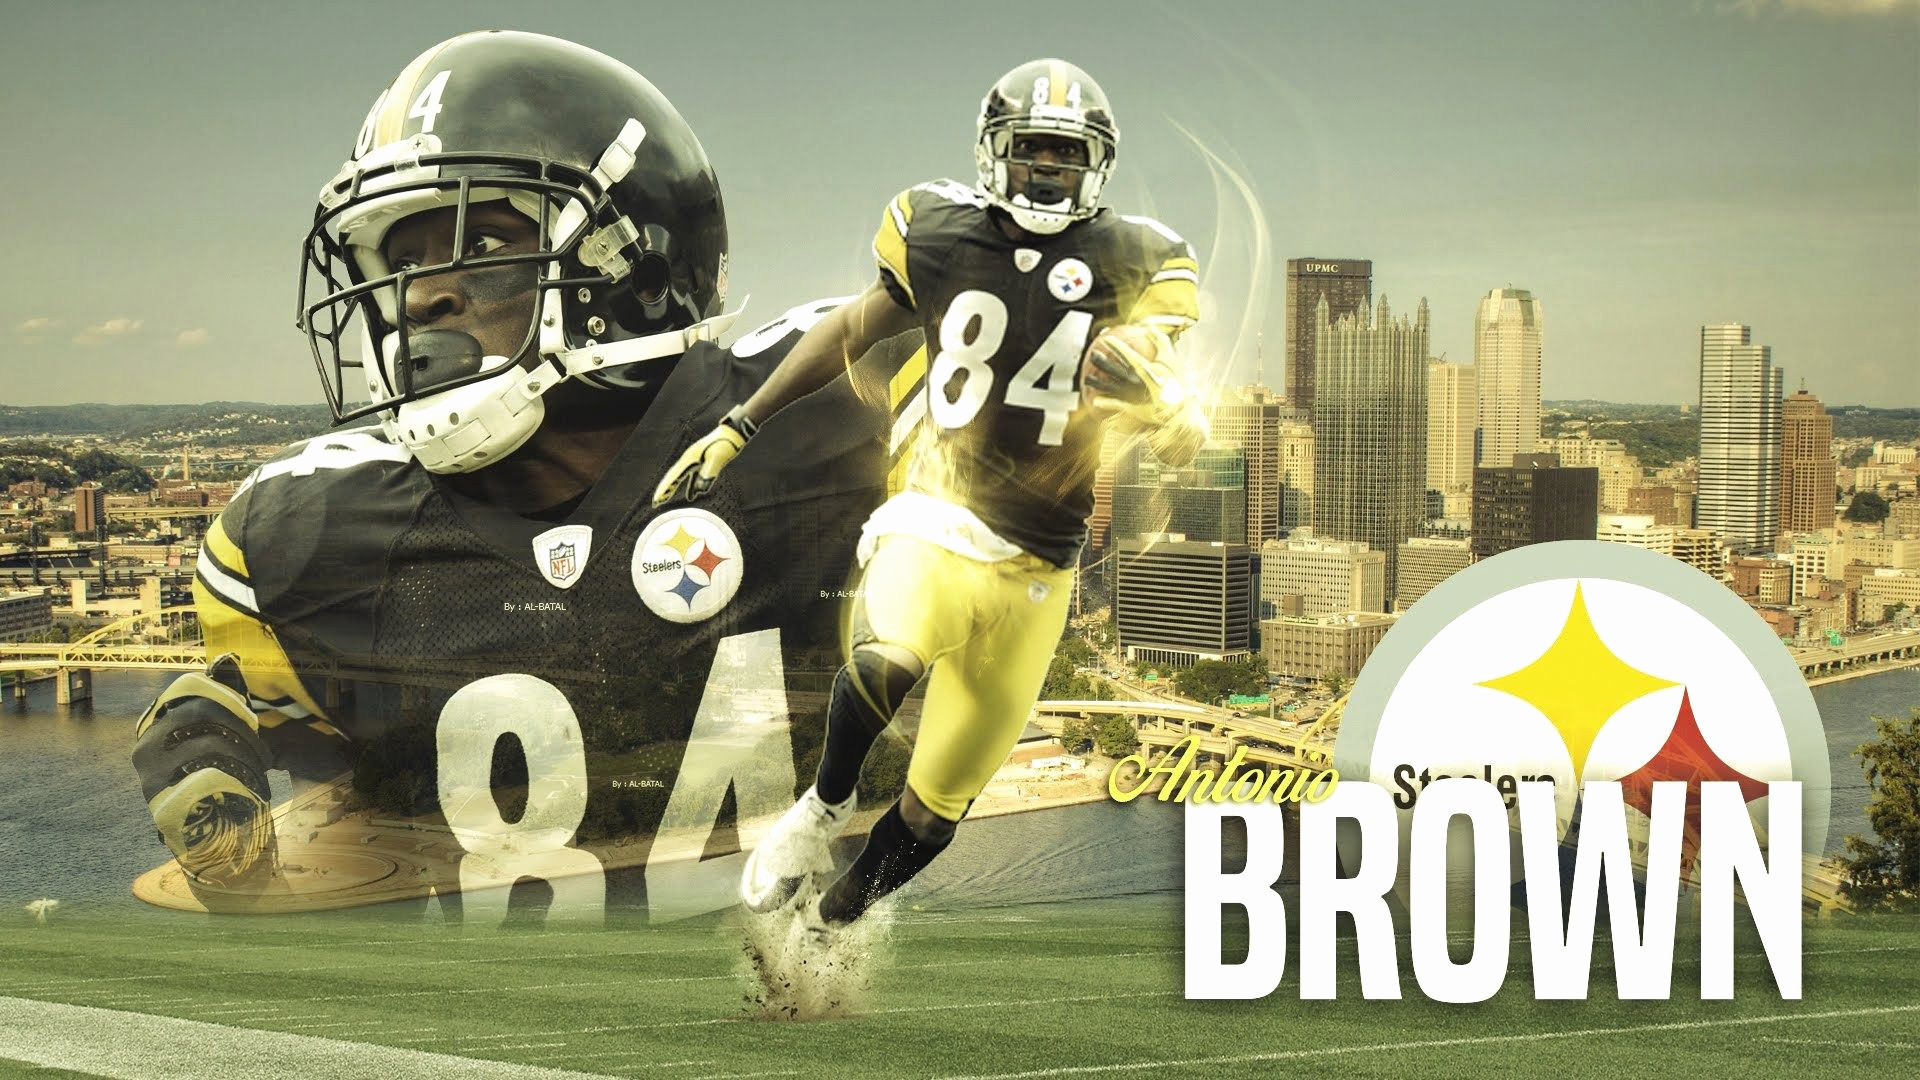 Res: 1920x1080, Pittsburgh Steelers Wallpaper HD 39 - 1920 X 1080